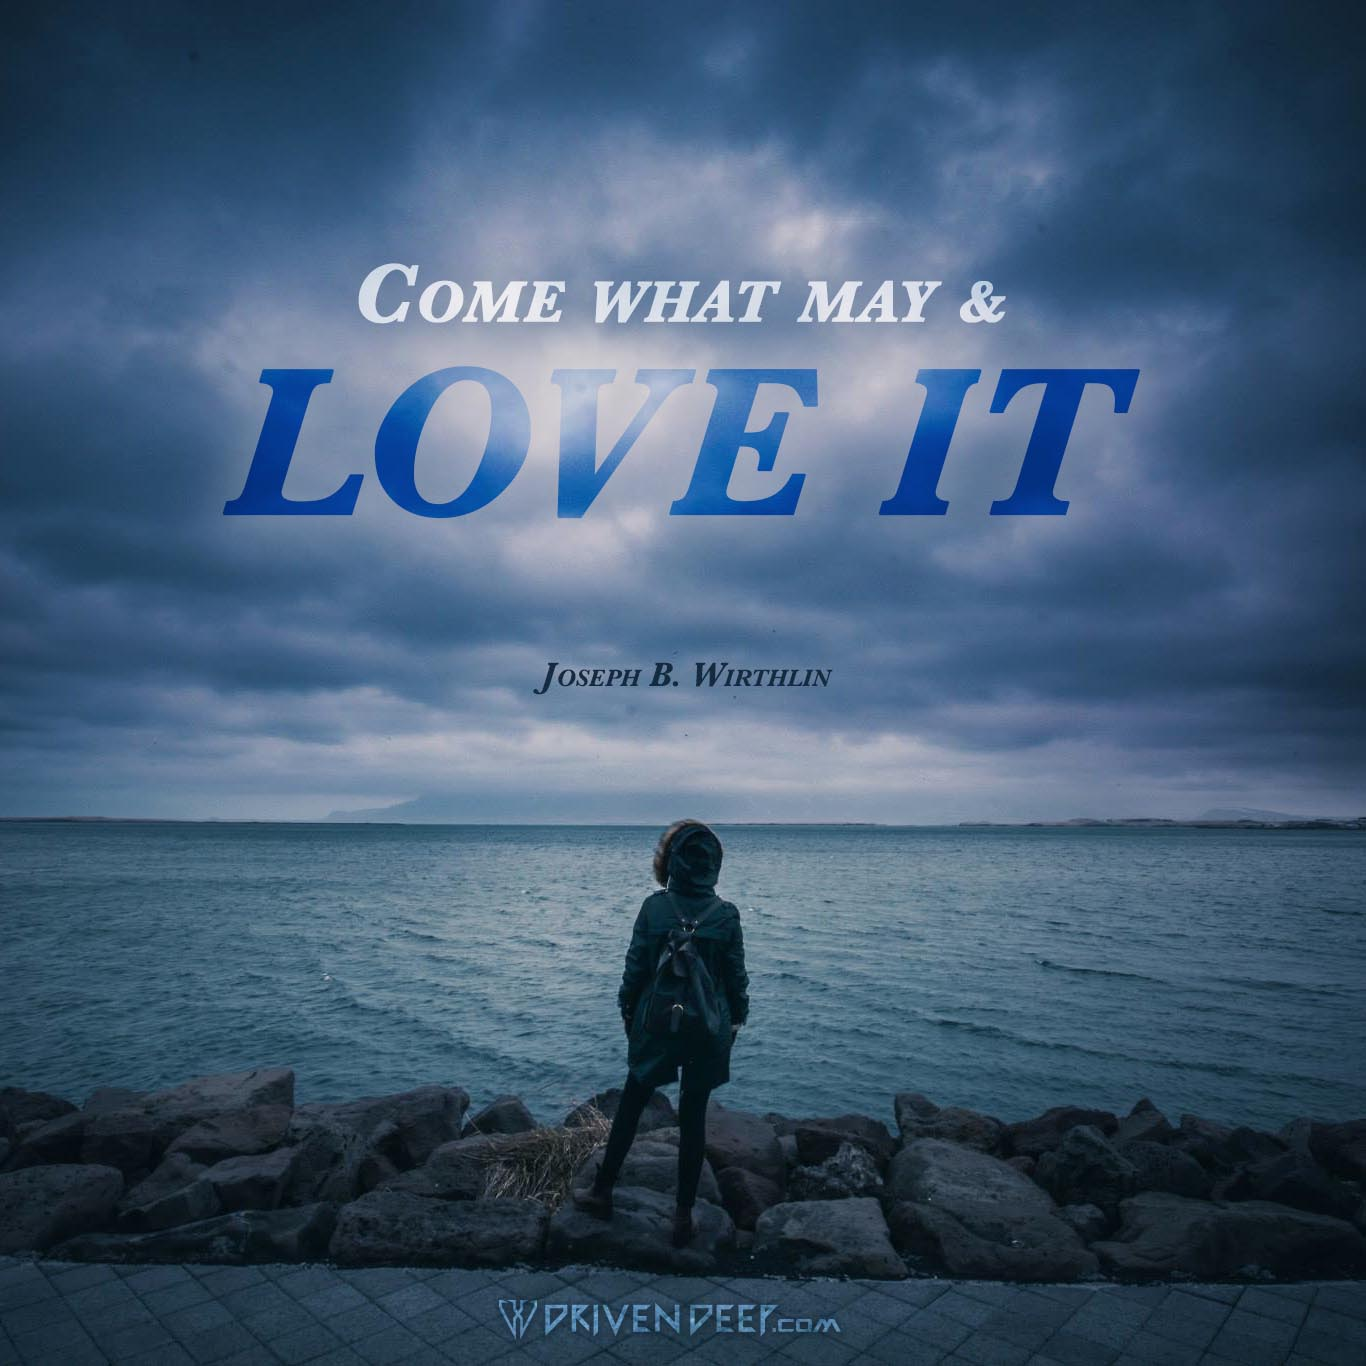 Come what may and love it - Joseph B. Wirthlin - Small.jpg